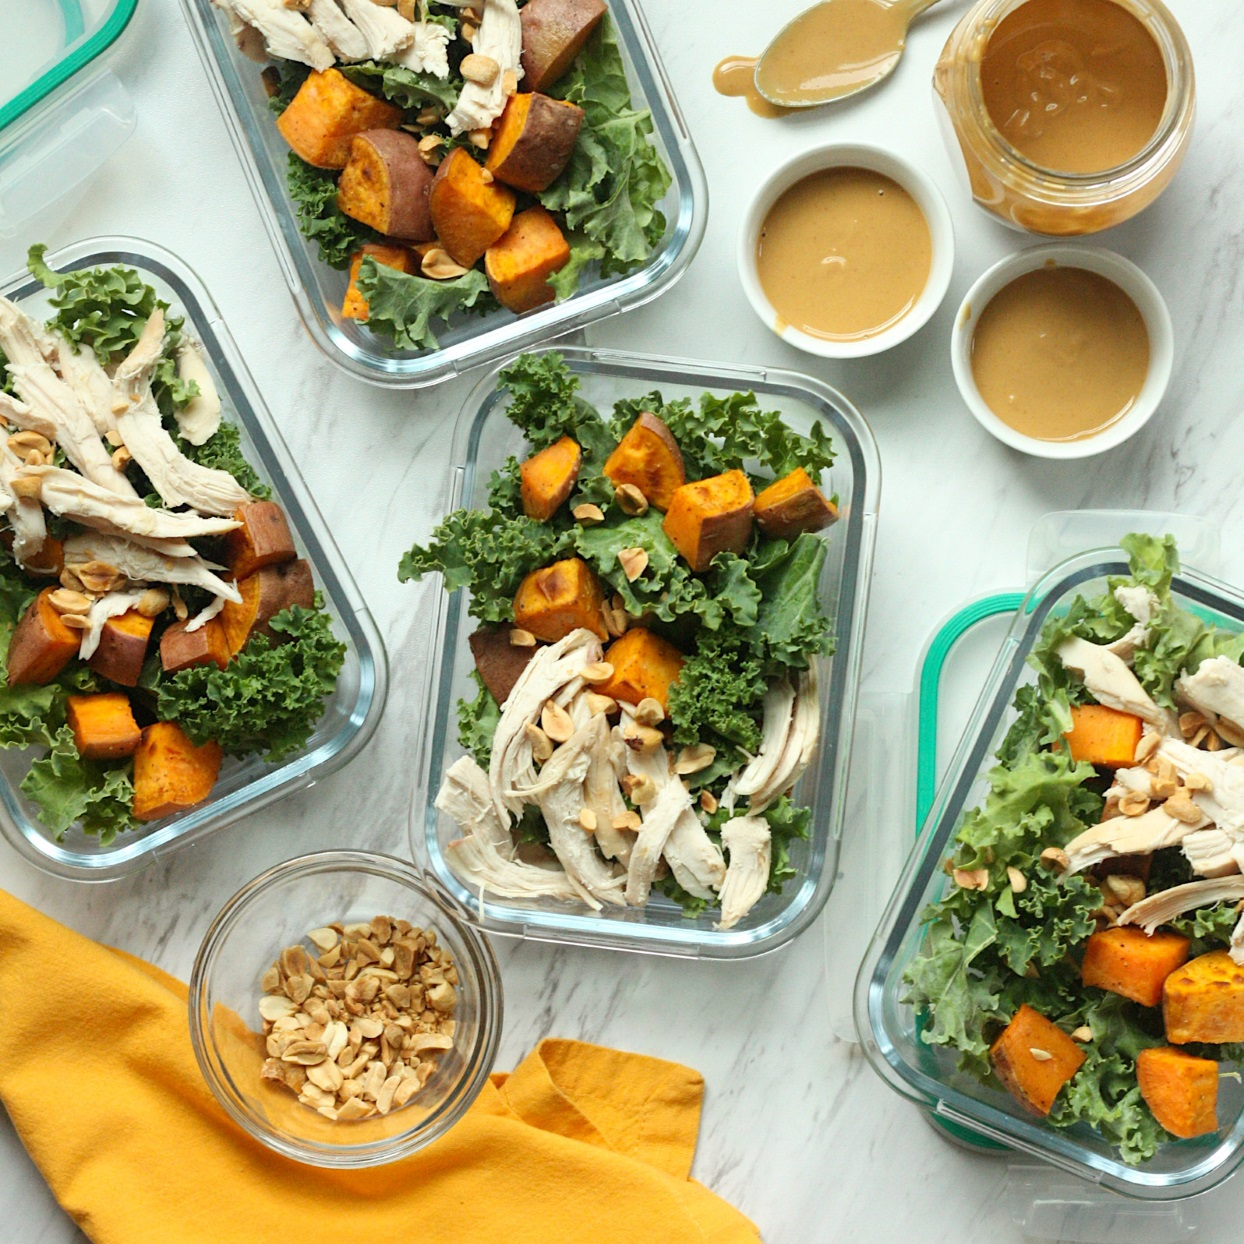 Sweet Potato, Kale & Chicken Salad with Peanut Dressing